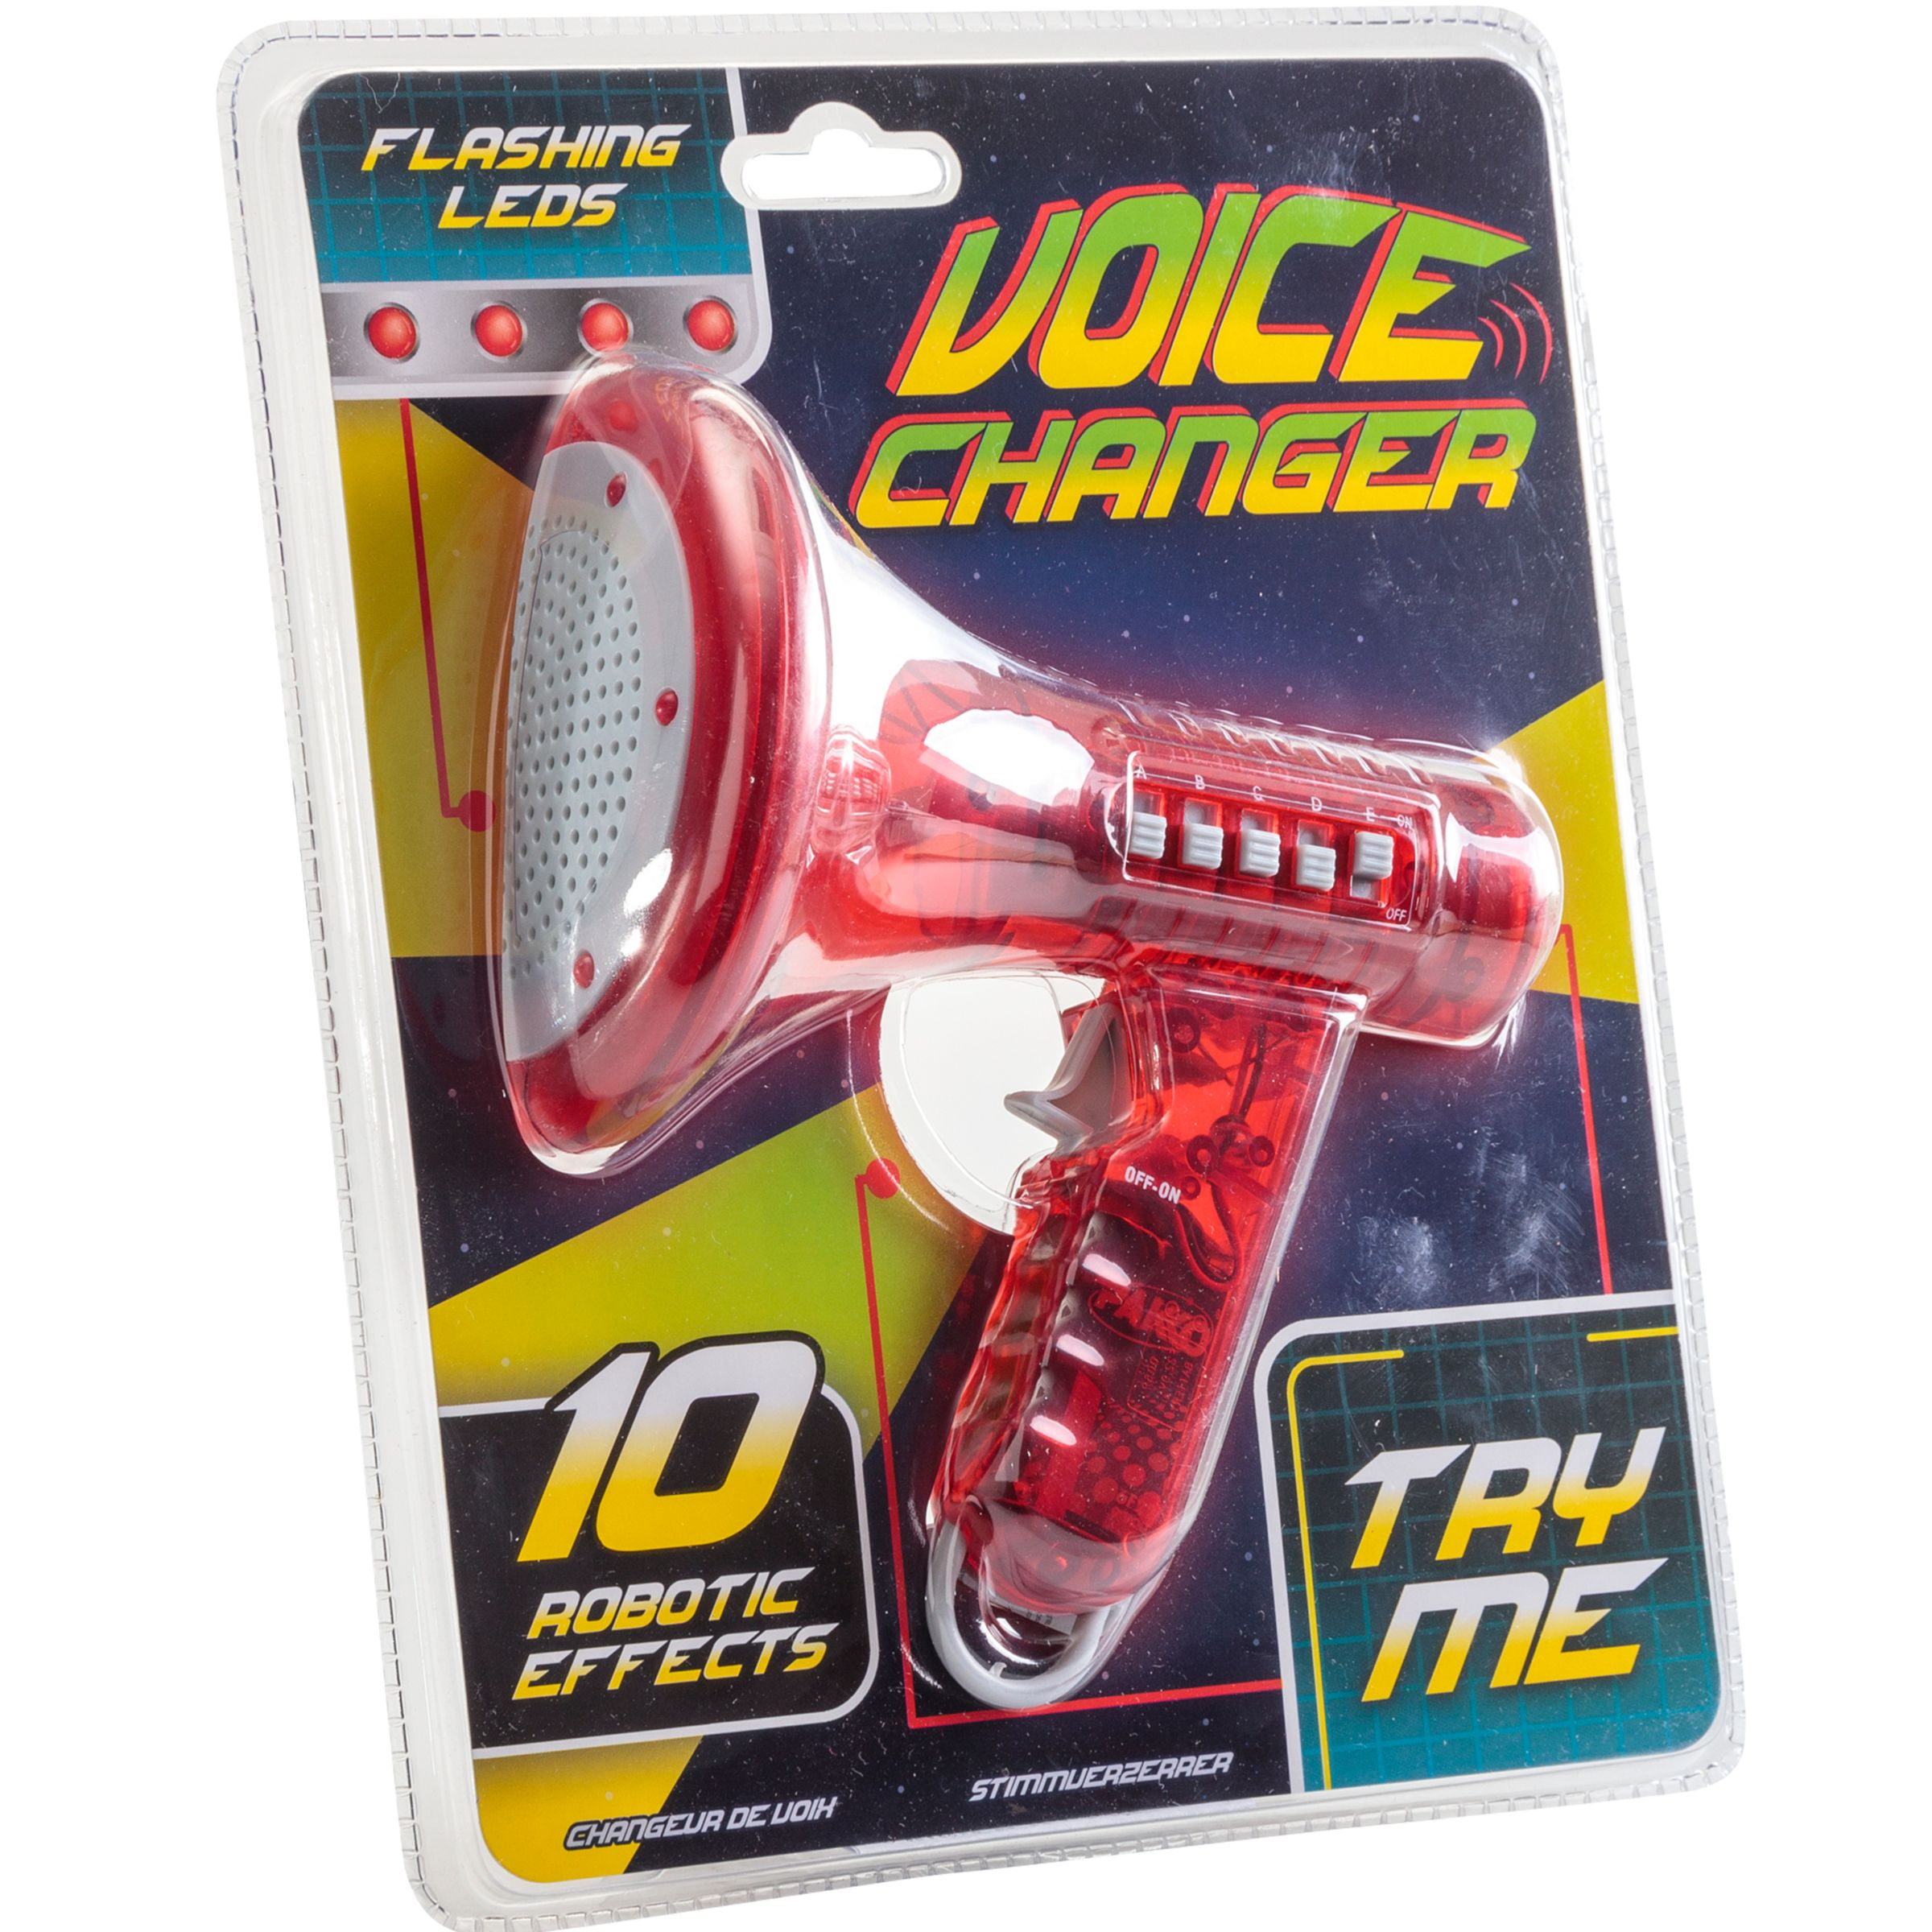 Tobar Voice Changer, Assorted Colours